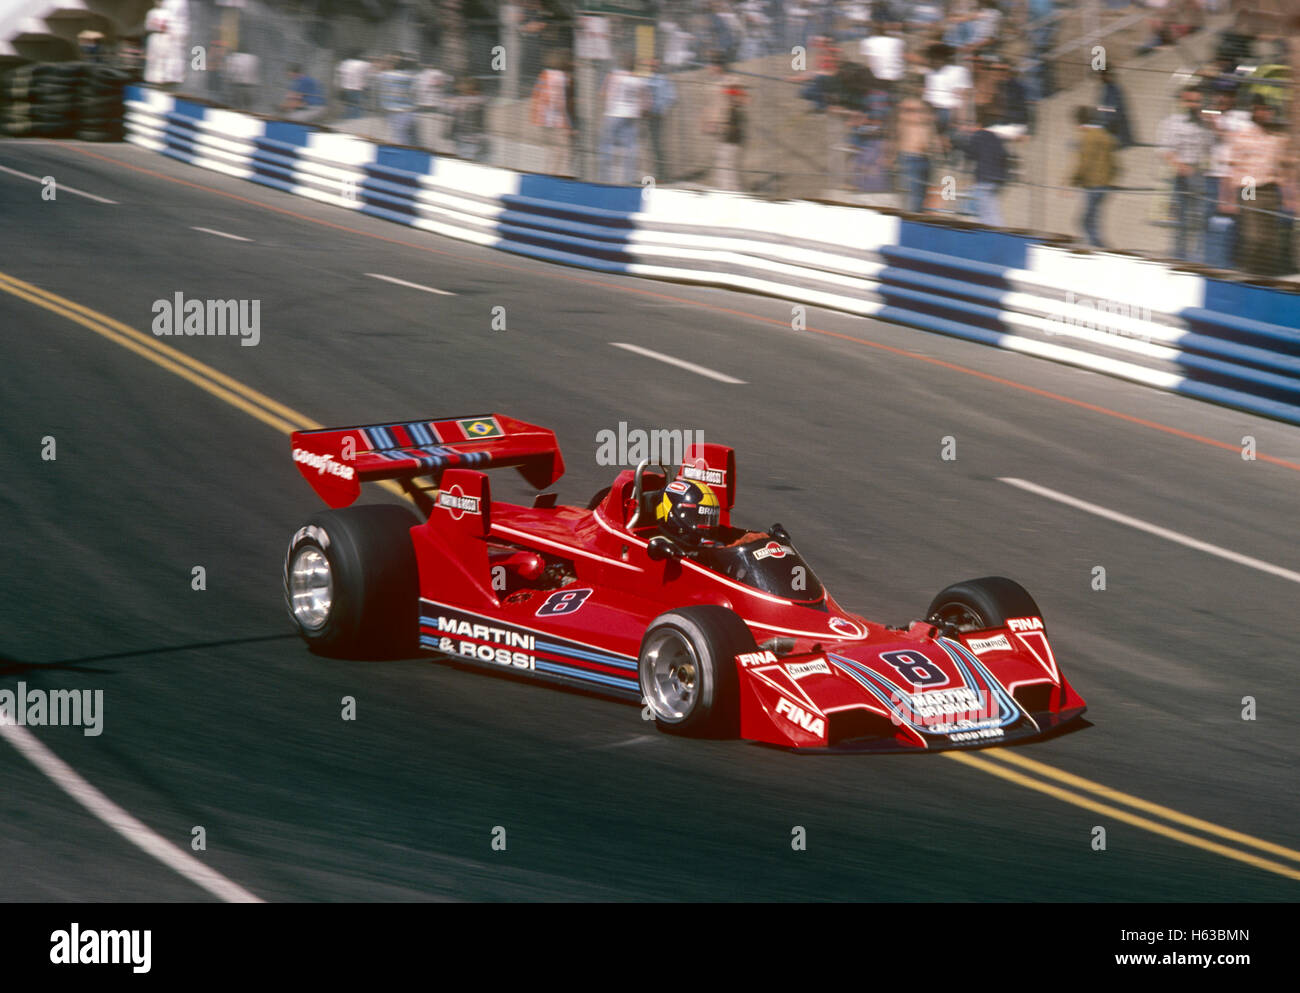 Carlos Pace conduciendo su Brabham BT44 Alfa Romeo Coche de carreras 1975 Long Beach US GP West Imagen De Stock